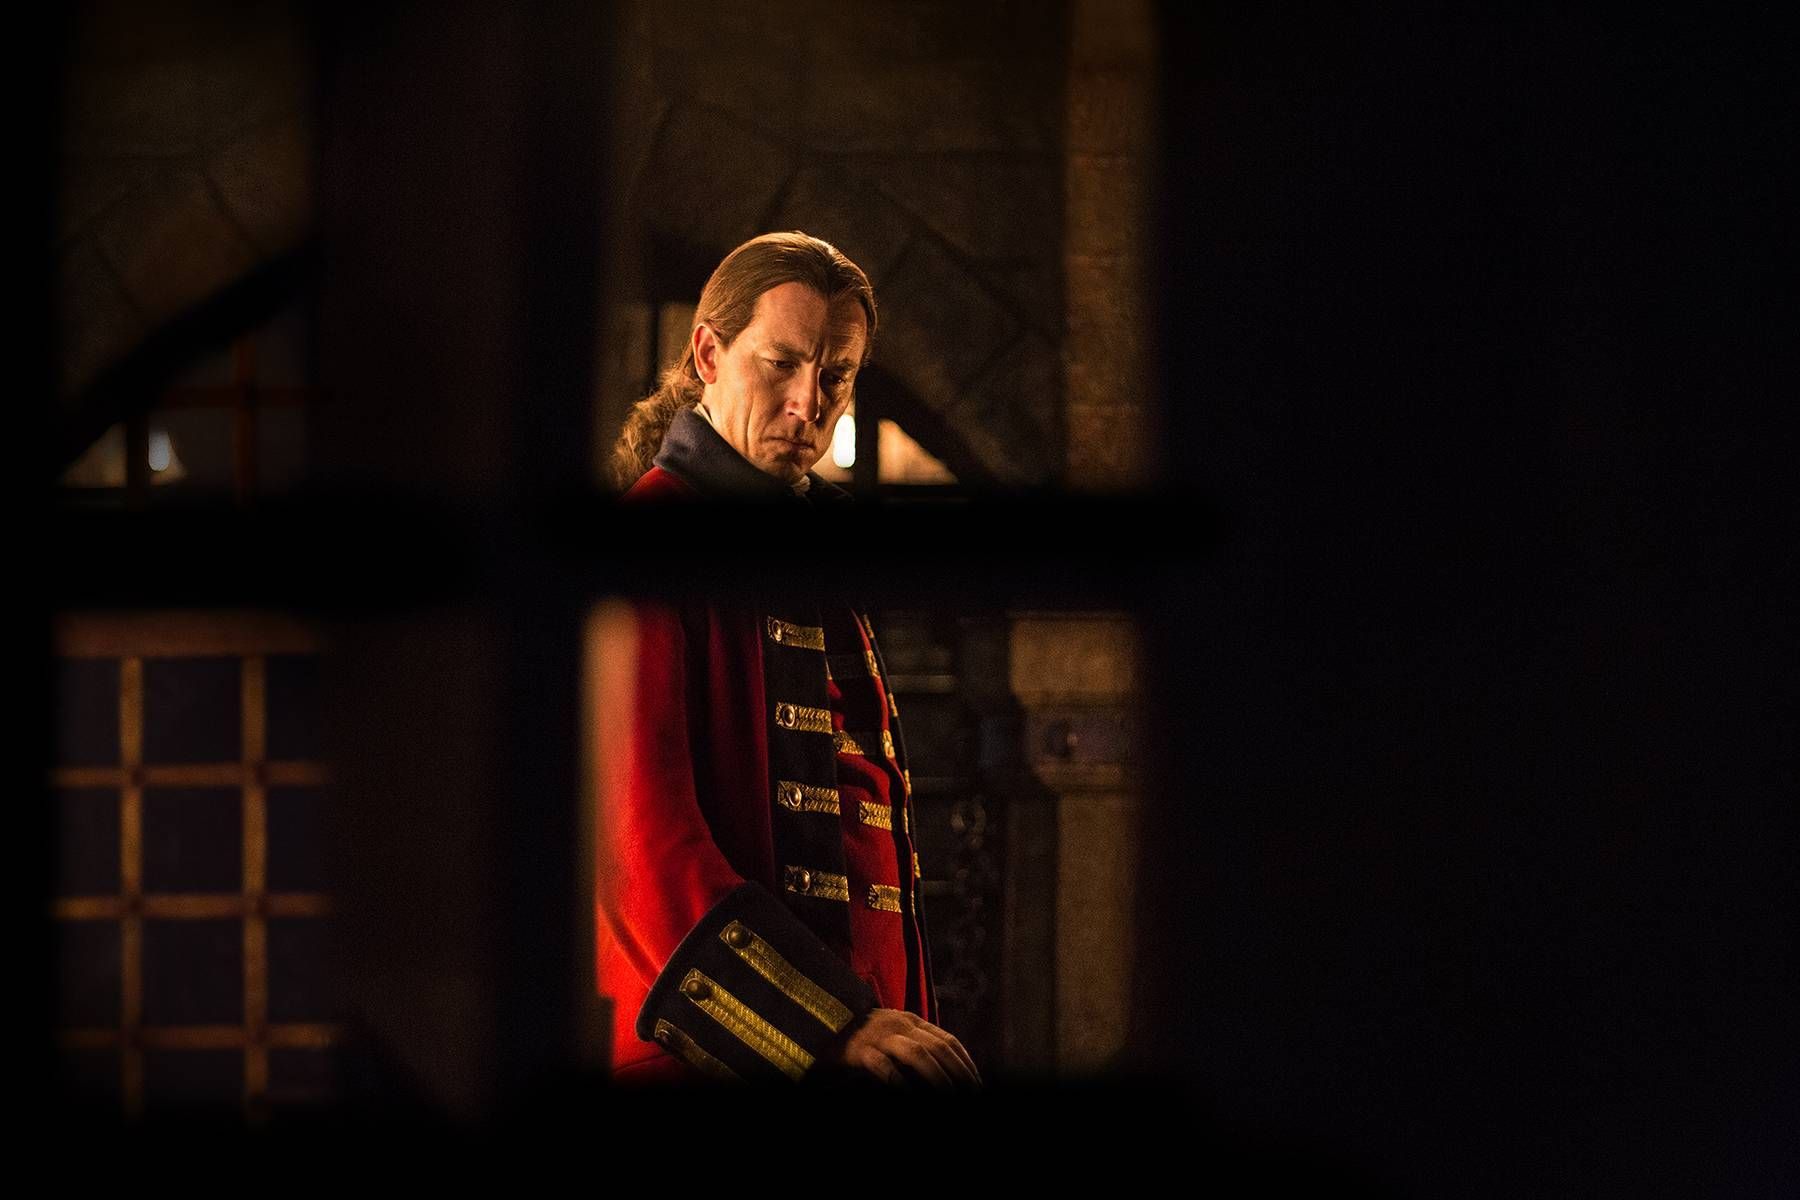 Outlander Season 1 Episode 15